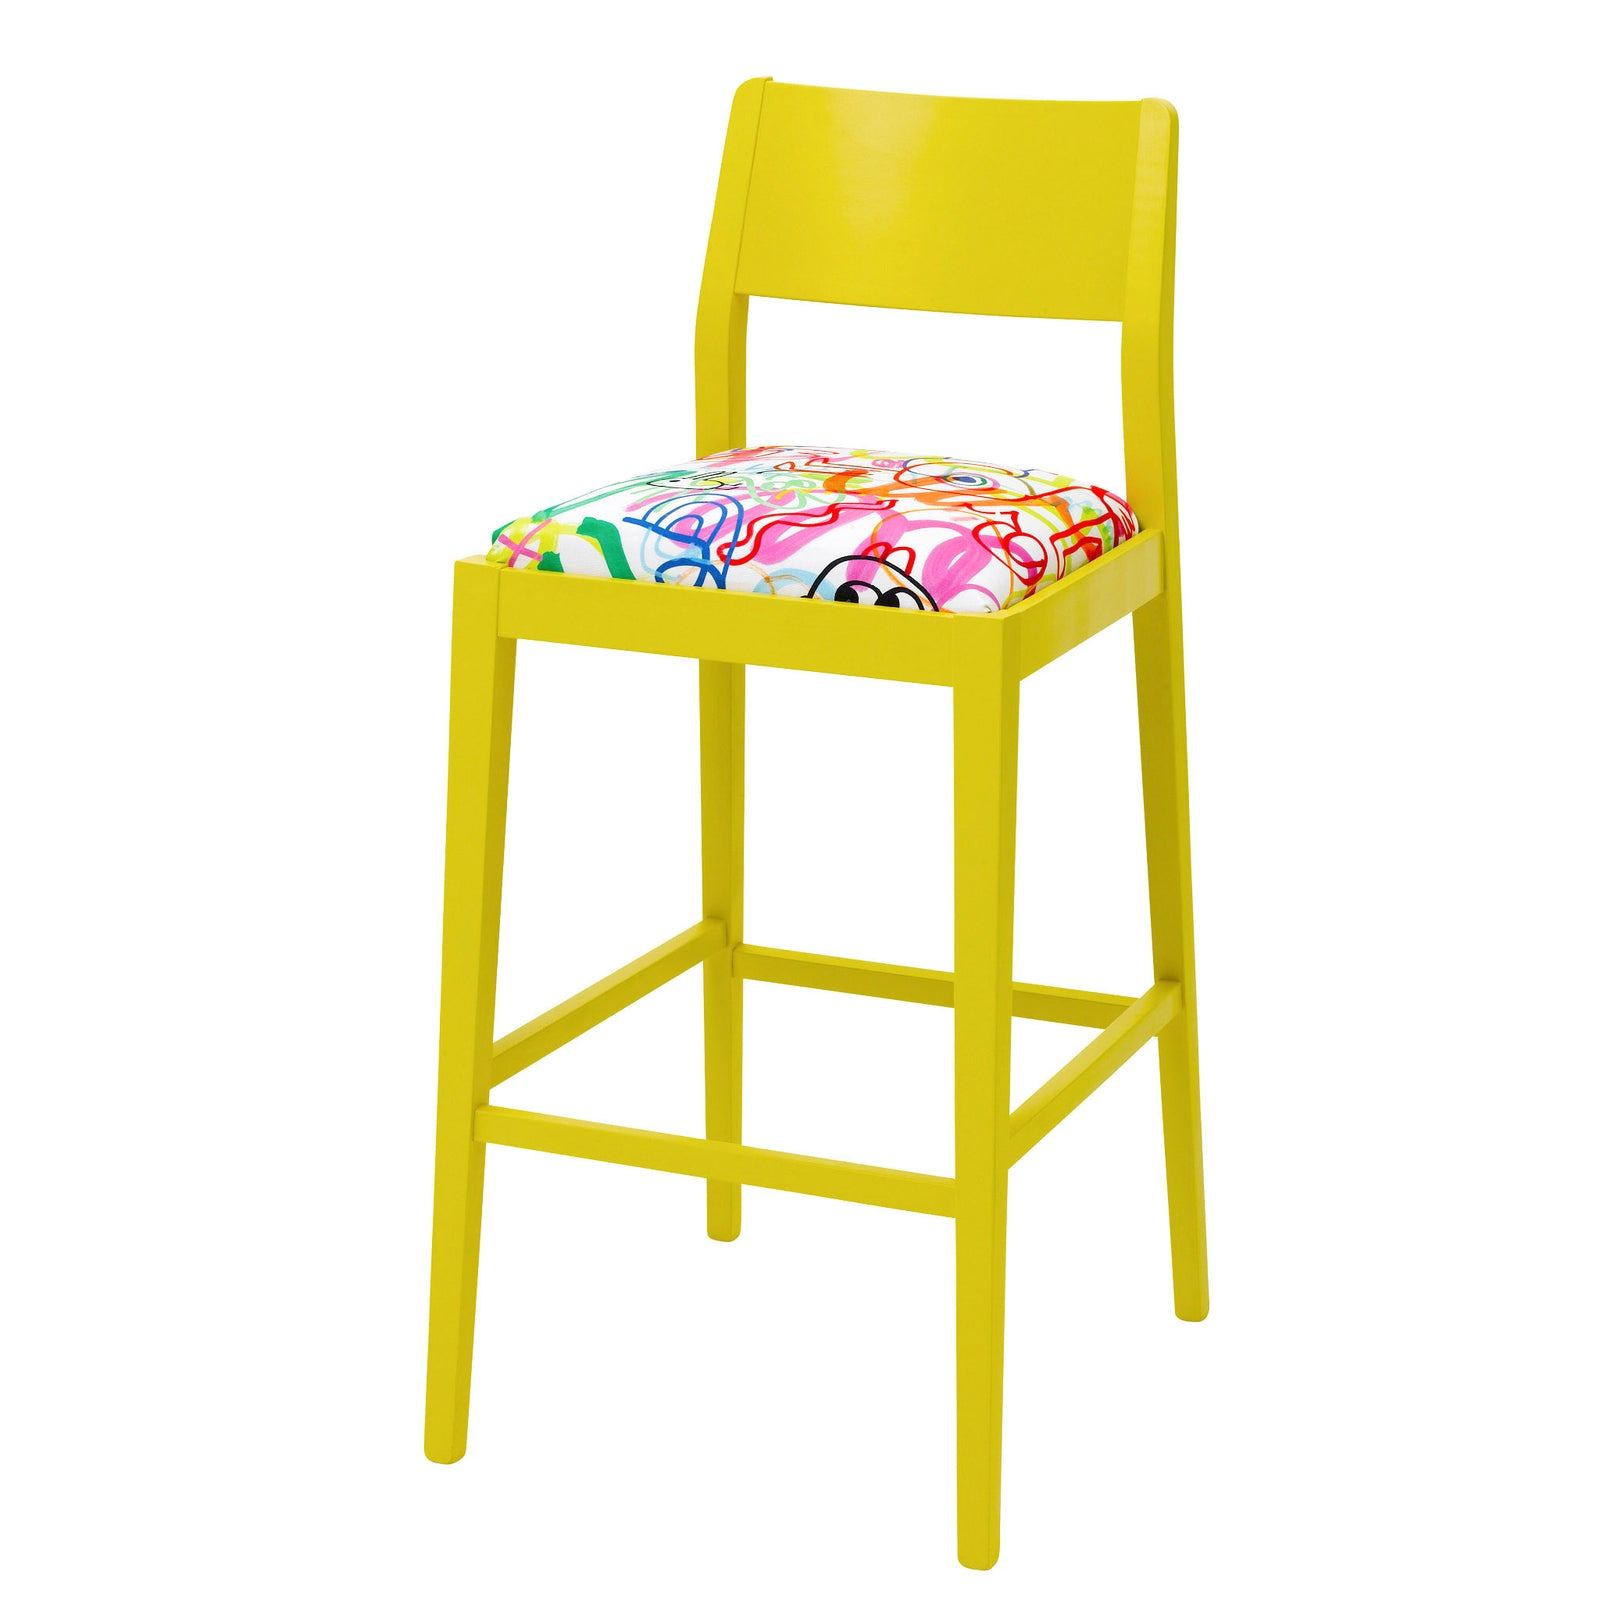 Sunny yellow Shaker bar stool upholstered in the comic Ranbow Scrawl by Jon Burgerman